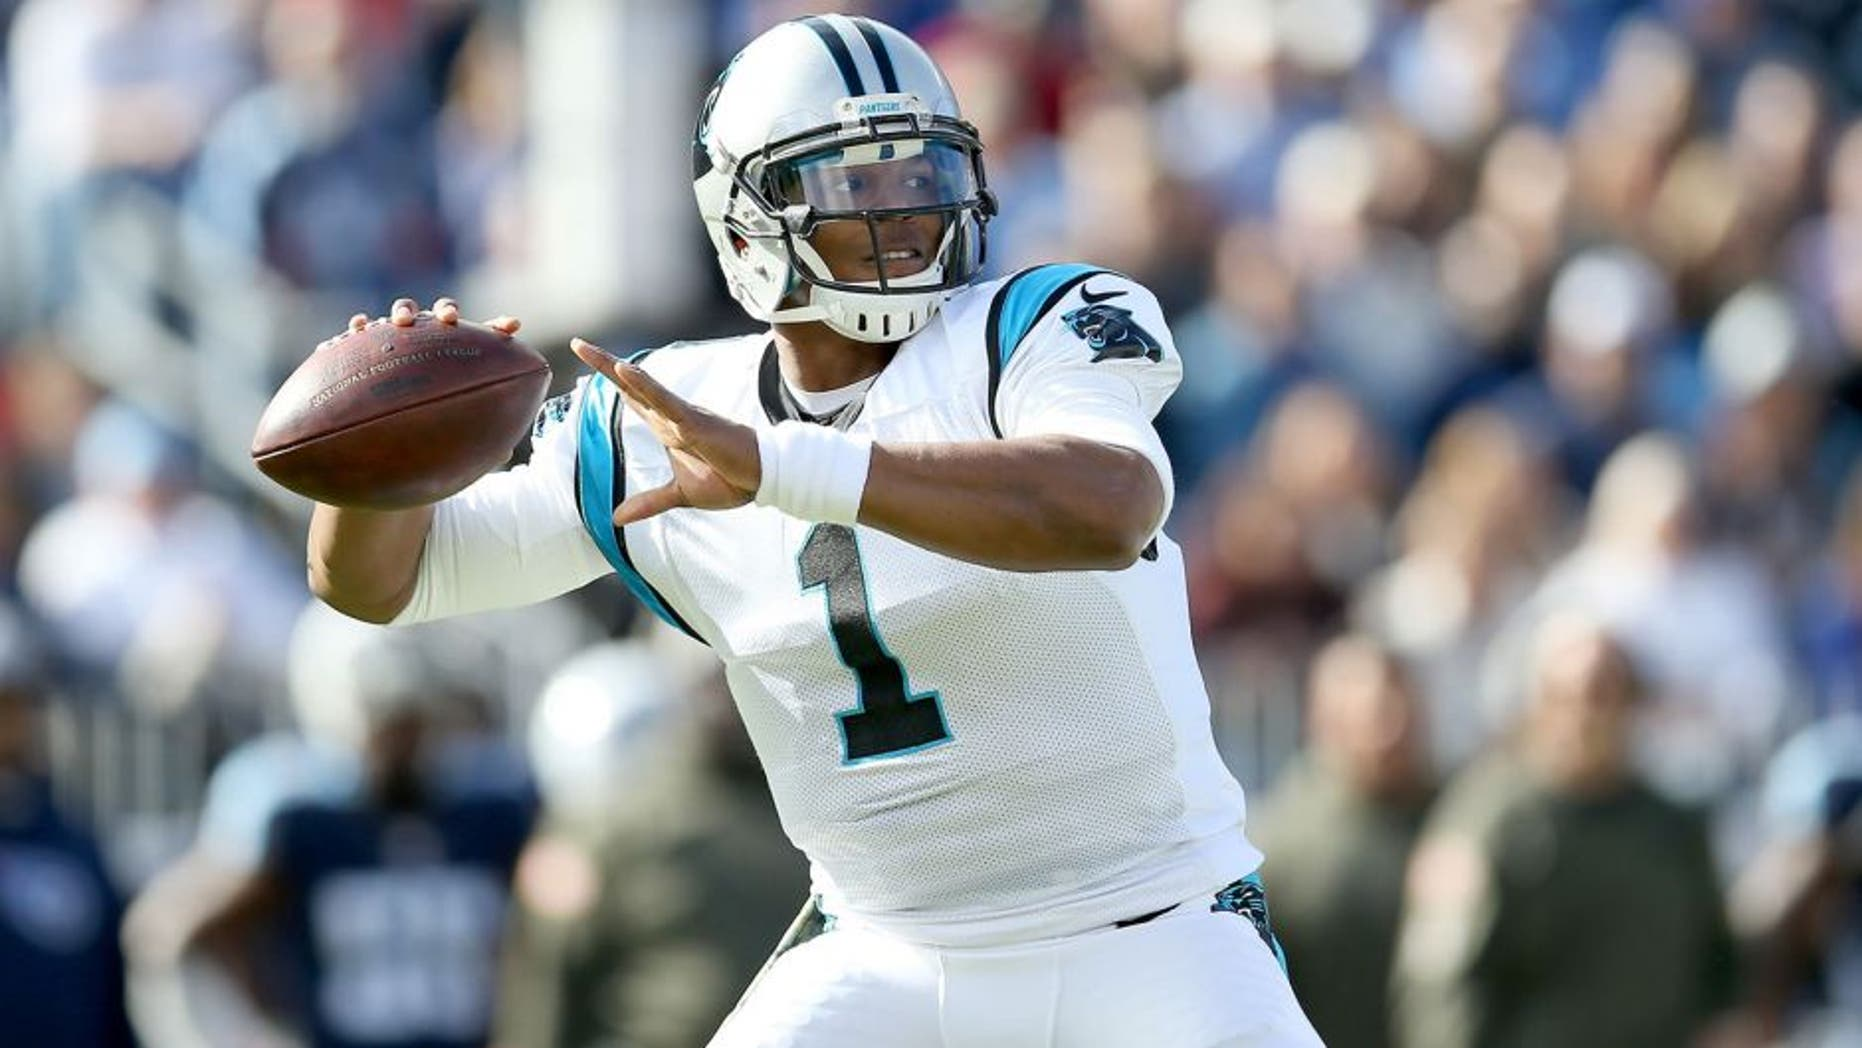 NASHVILLE, TN - NOVEMBER 15: Cam Newton #1 of the Carolina Panthers winds up for a pass during the first quarter against the Tennessee Titans at LP Field on November 15, 2015 in Nashville, Tennessee. (Photo by Andy Lyons/Getty Images)